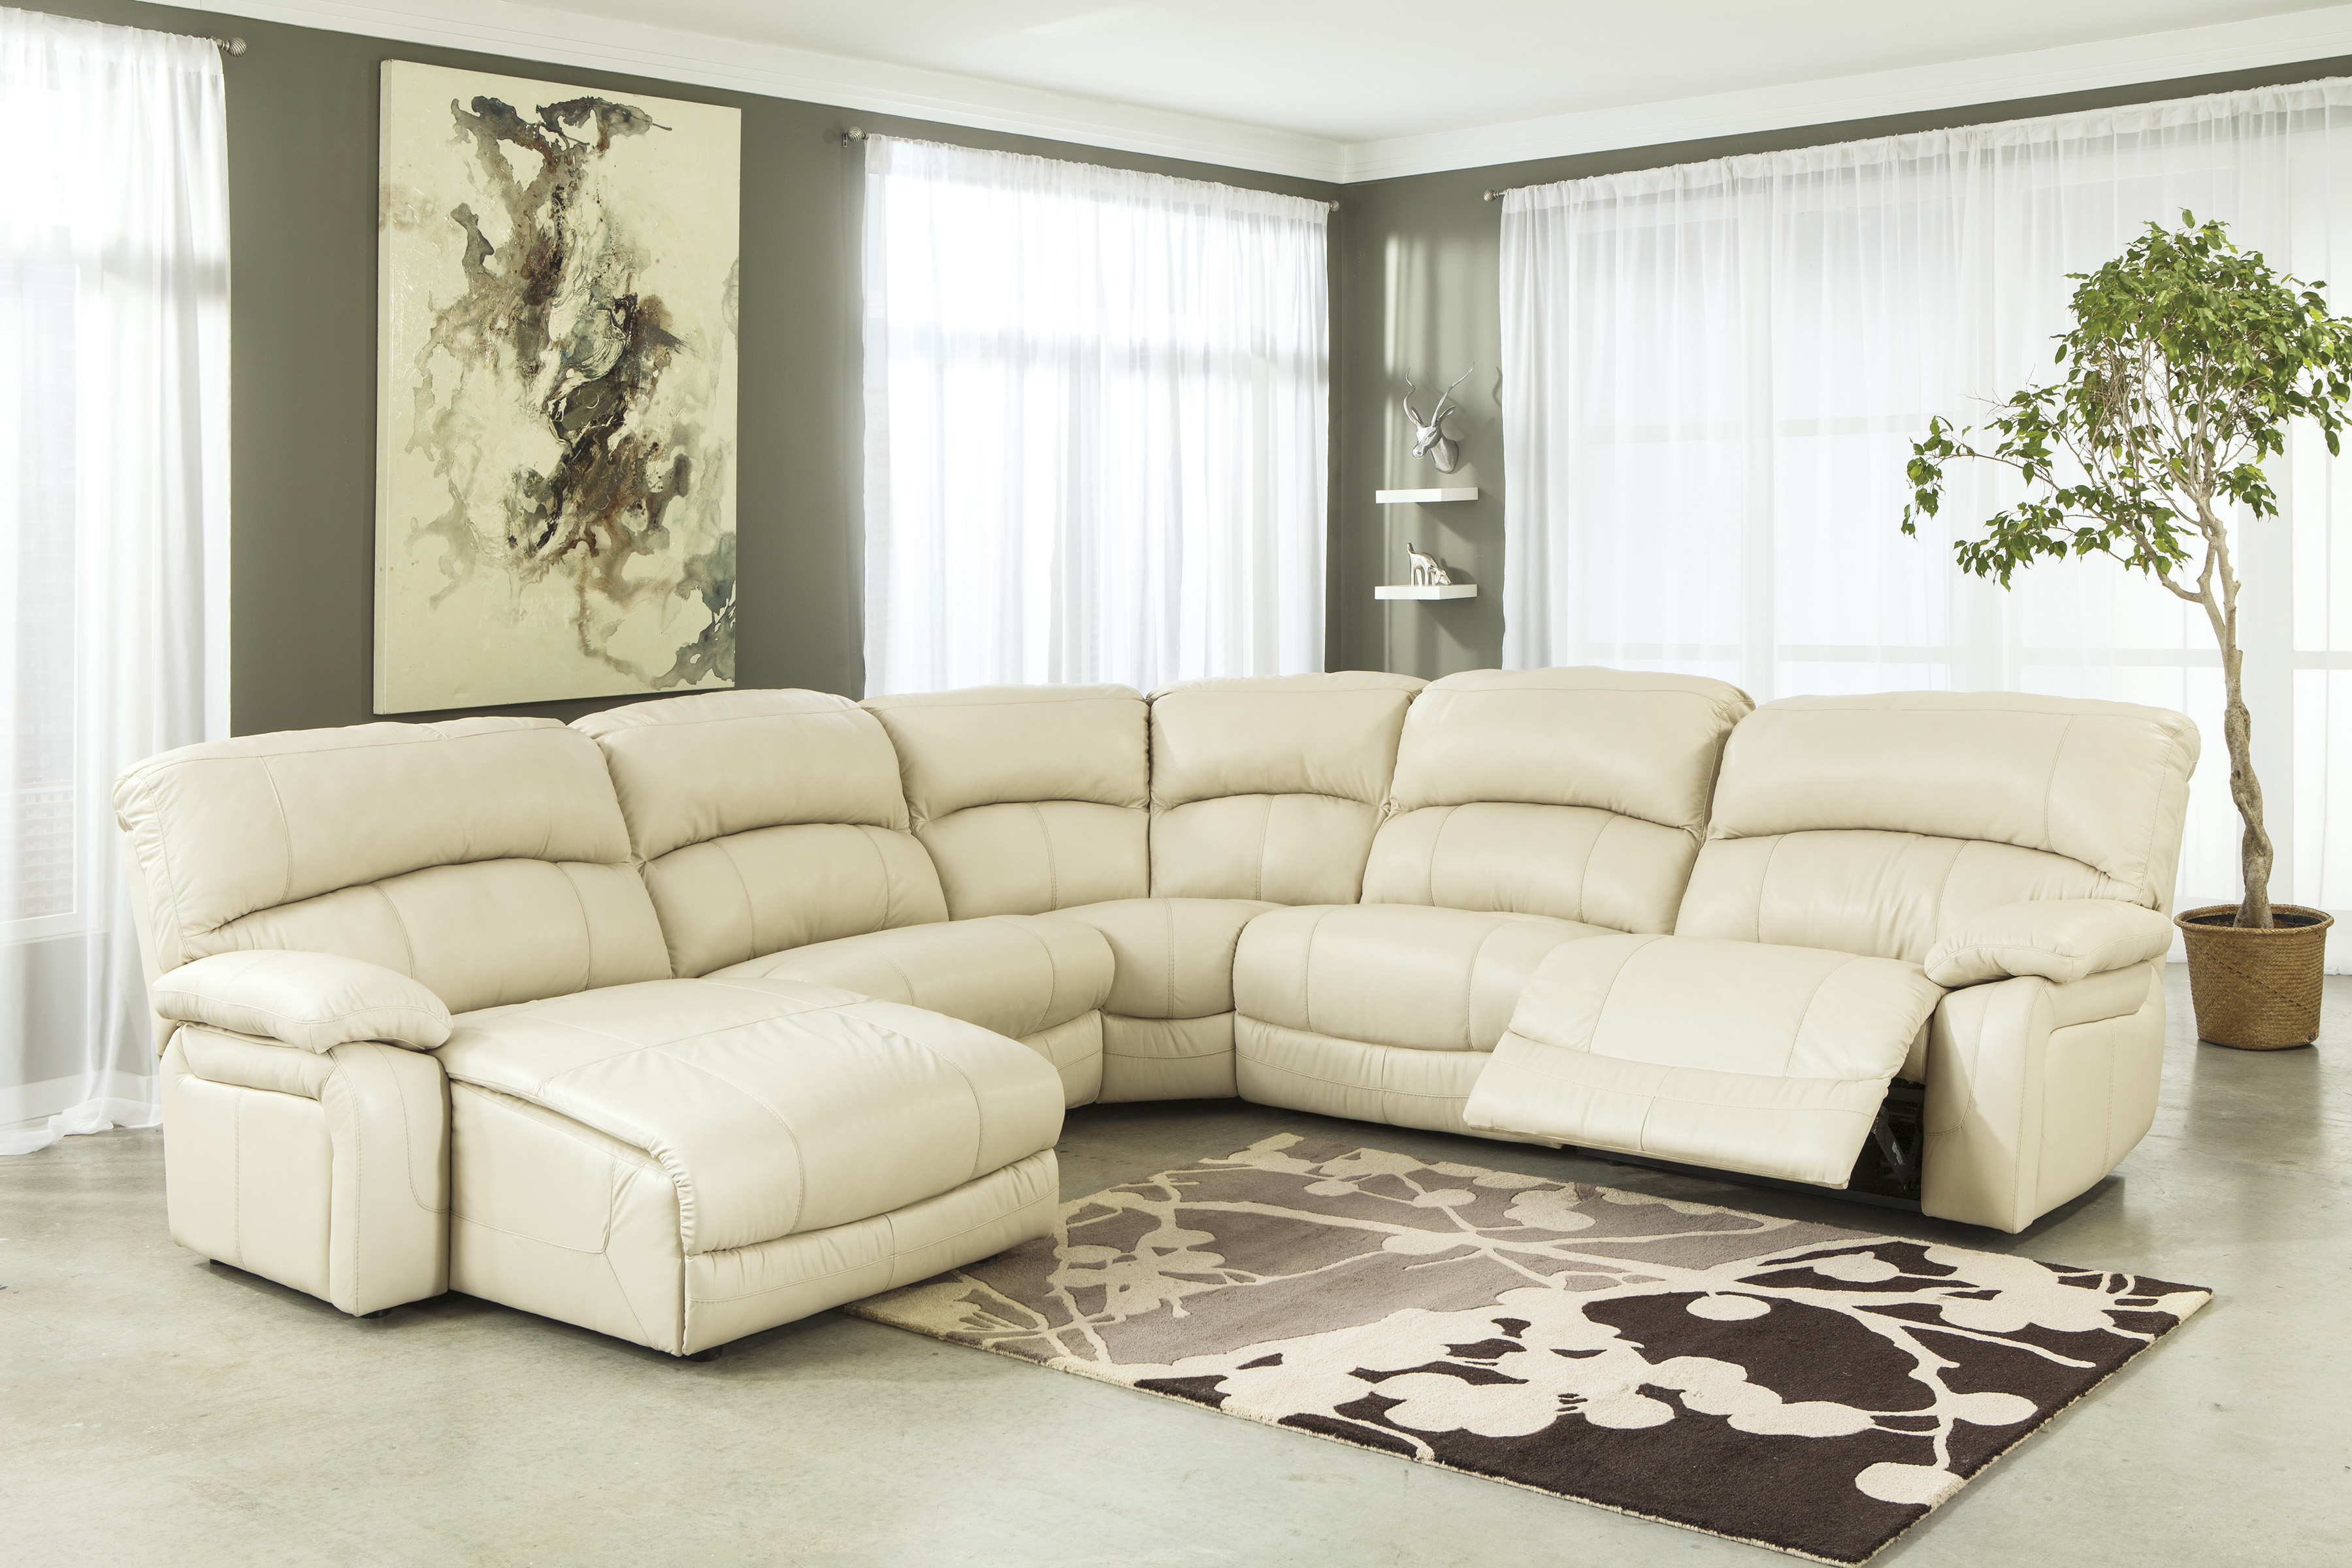 finest u shaped sectional sofa gallery-Sensational U Shaped Sectional sofa Collection